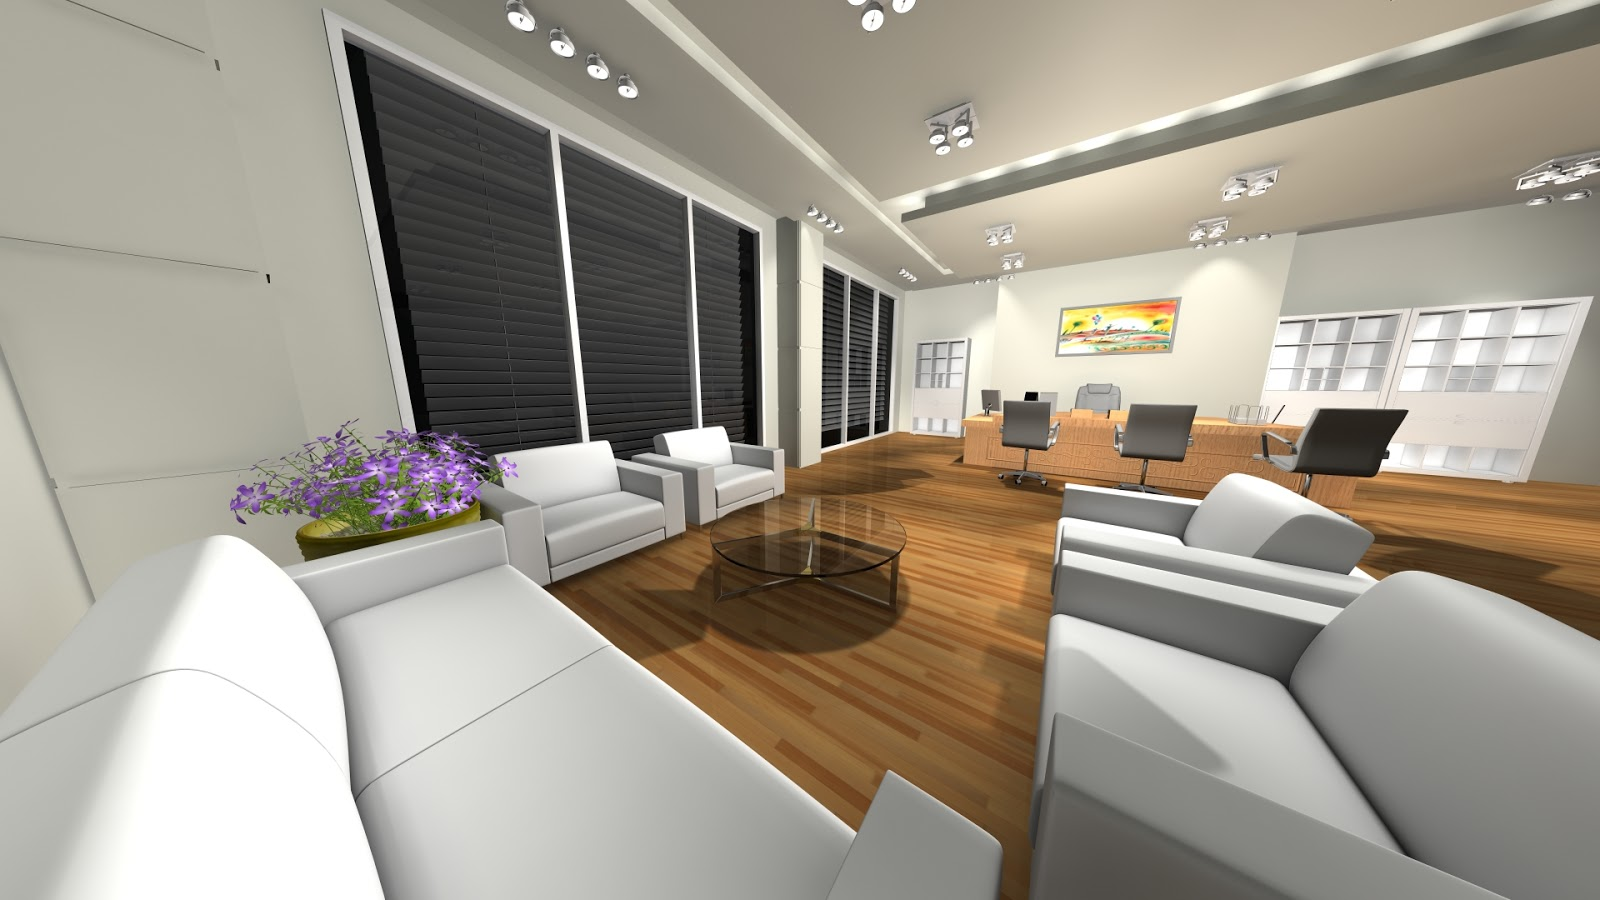 Sajid designer office room 3d interior design 3ds max for 3ds max design